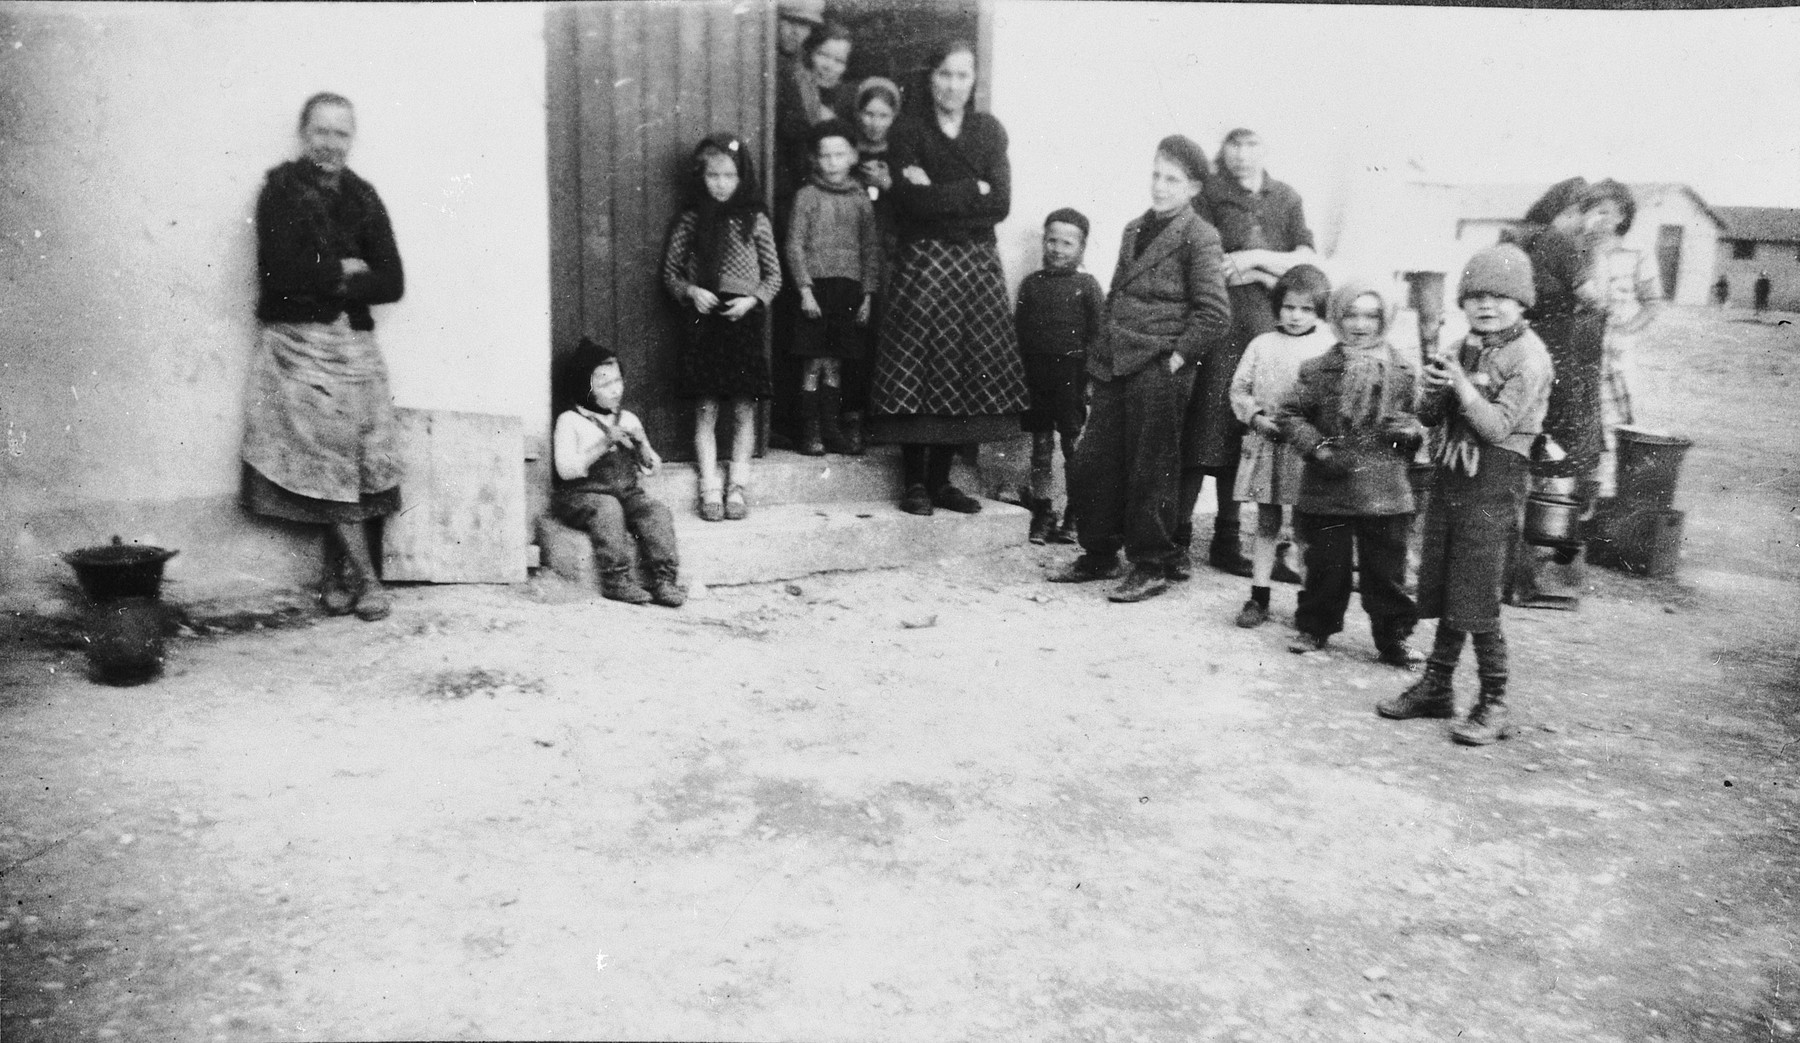 A group of women and children stand in the doorway of a barracks, likely in the Rivesaltes internment camp in France.